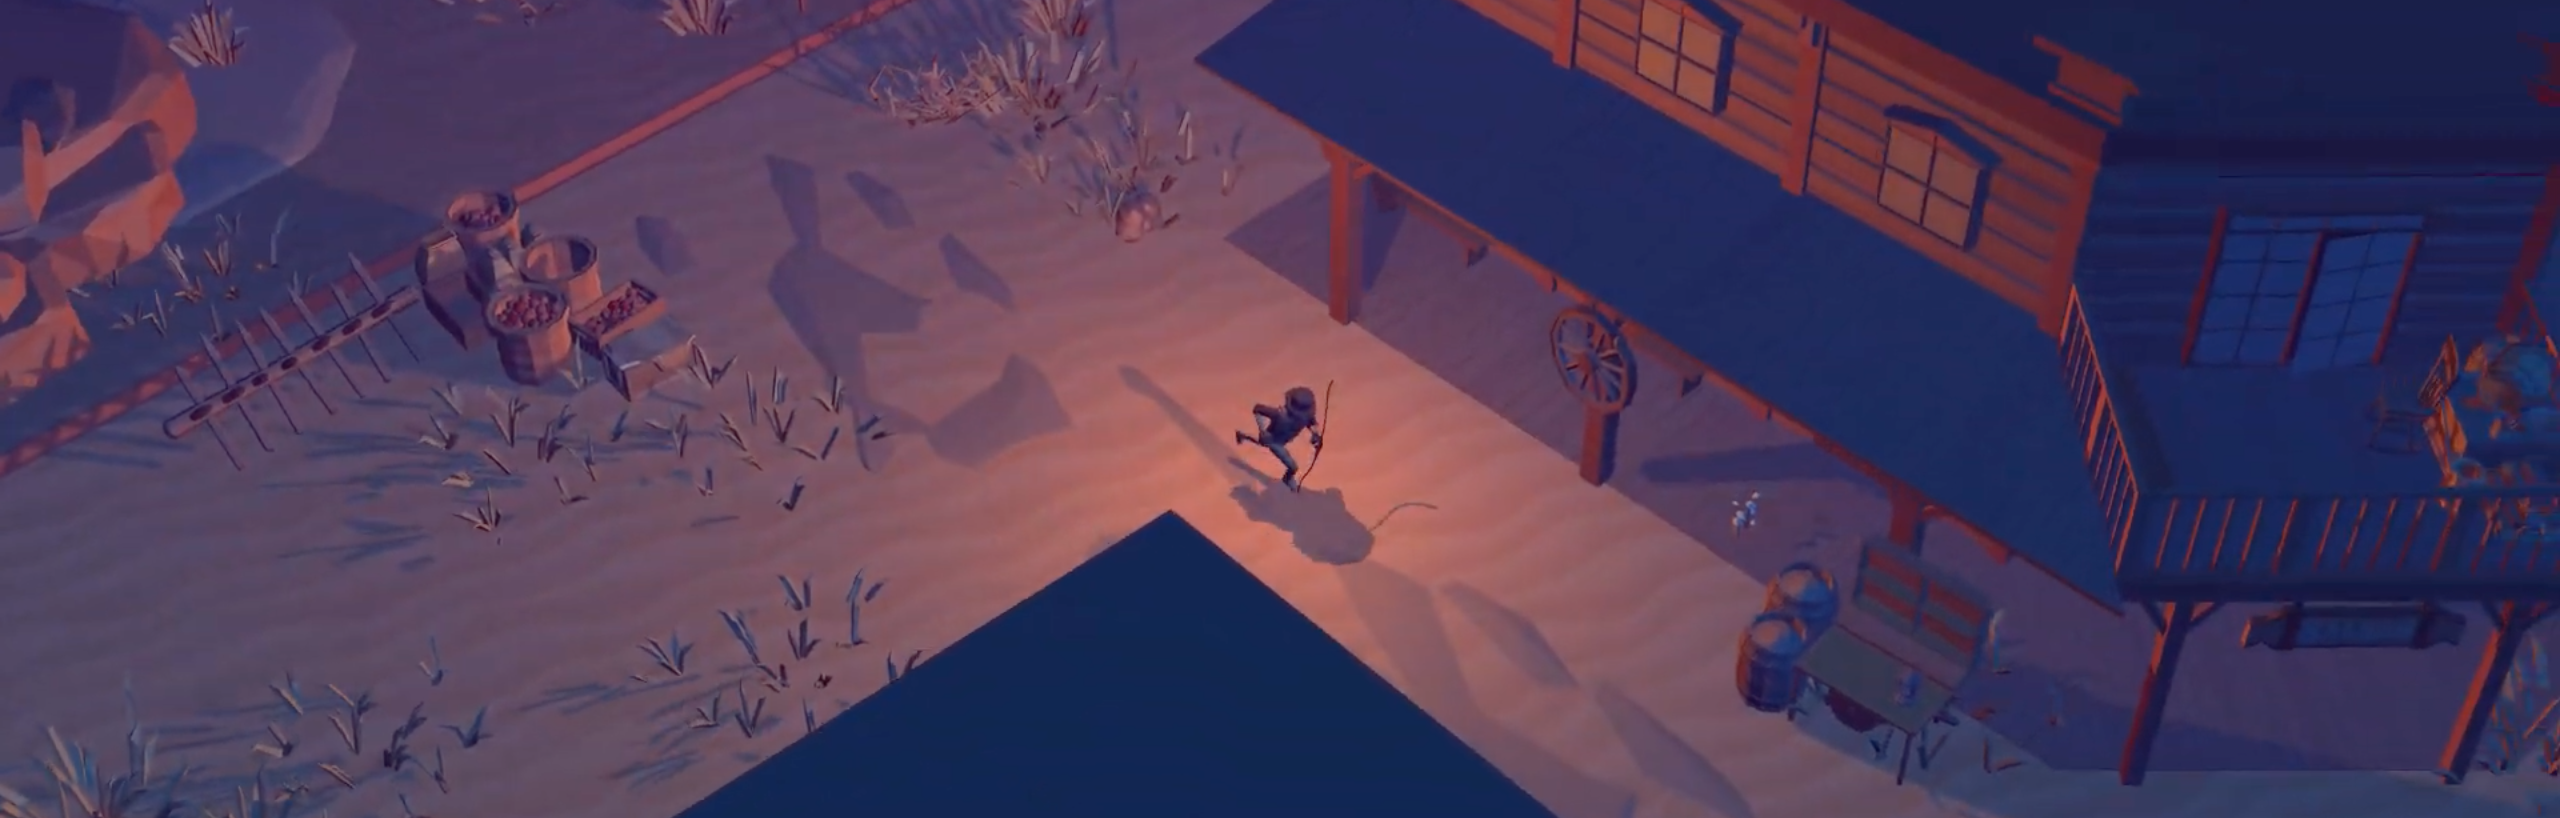 Hack and slay the cowboy undead in new Lonesome demo